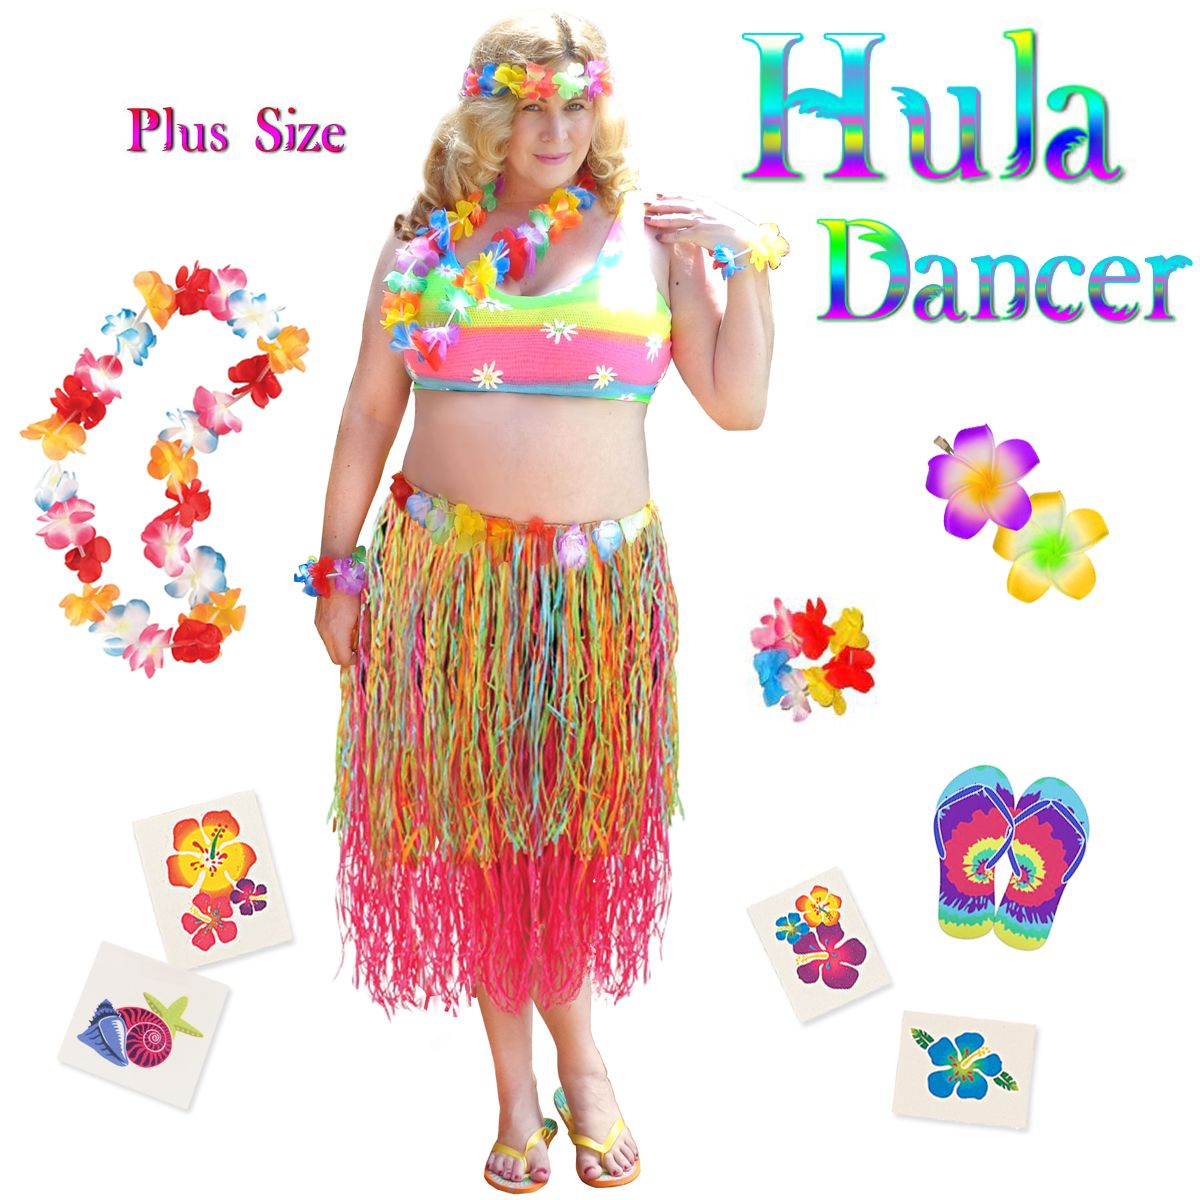 bffabae15a14d Pink   Multicolored Paper Hula Dancer Skirt Deluxe Costume Set Plus Size    Supersize Halloween Costume and Accessory Kit! Sizes Lg XL 1x 2x 3x 4x 5x  6x 7x ...